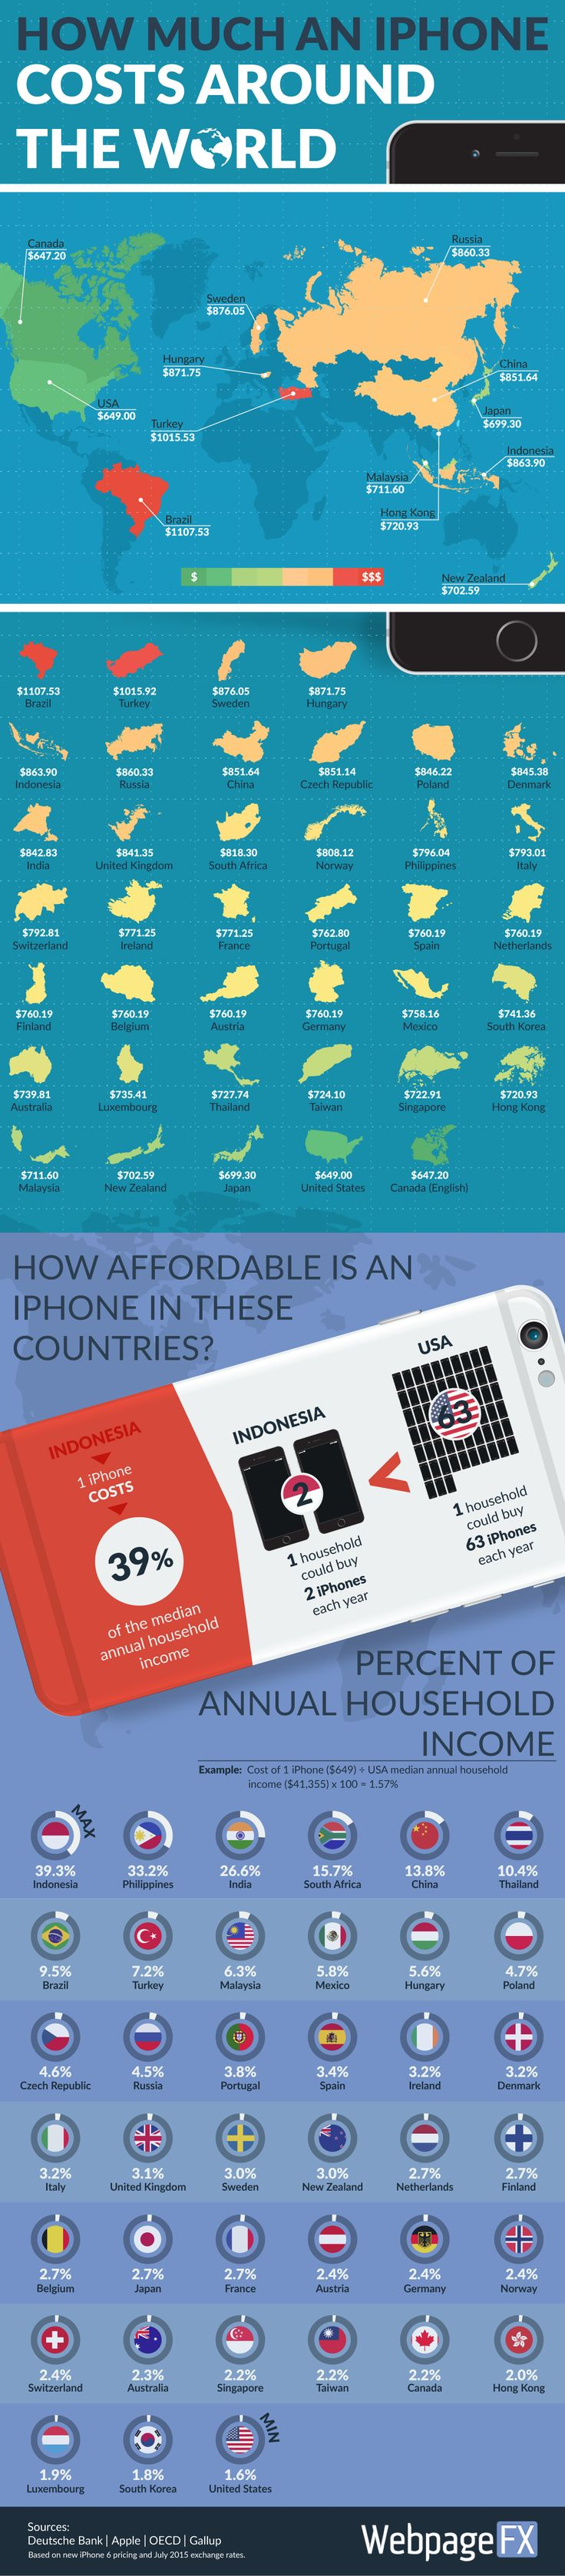 How much an iPhone costs around the world.